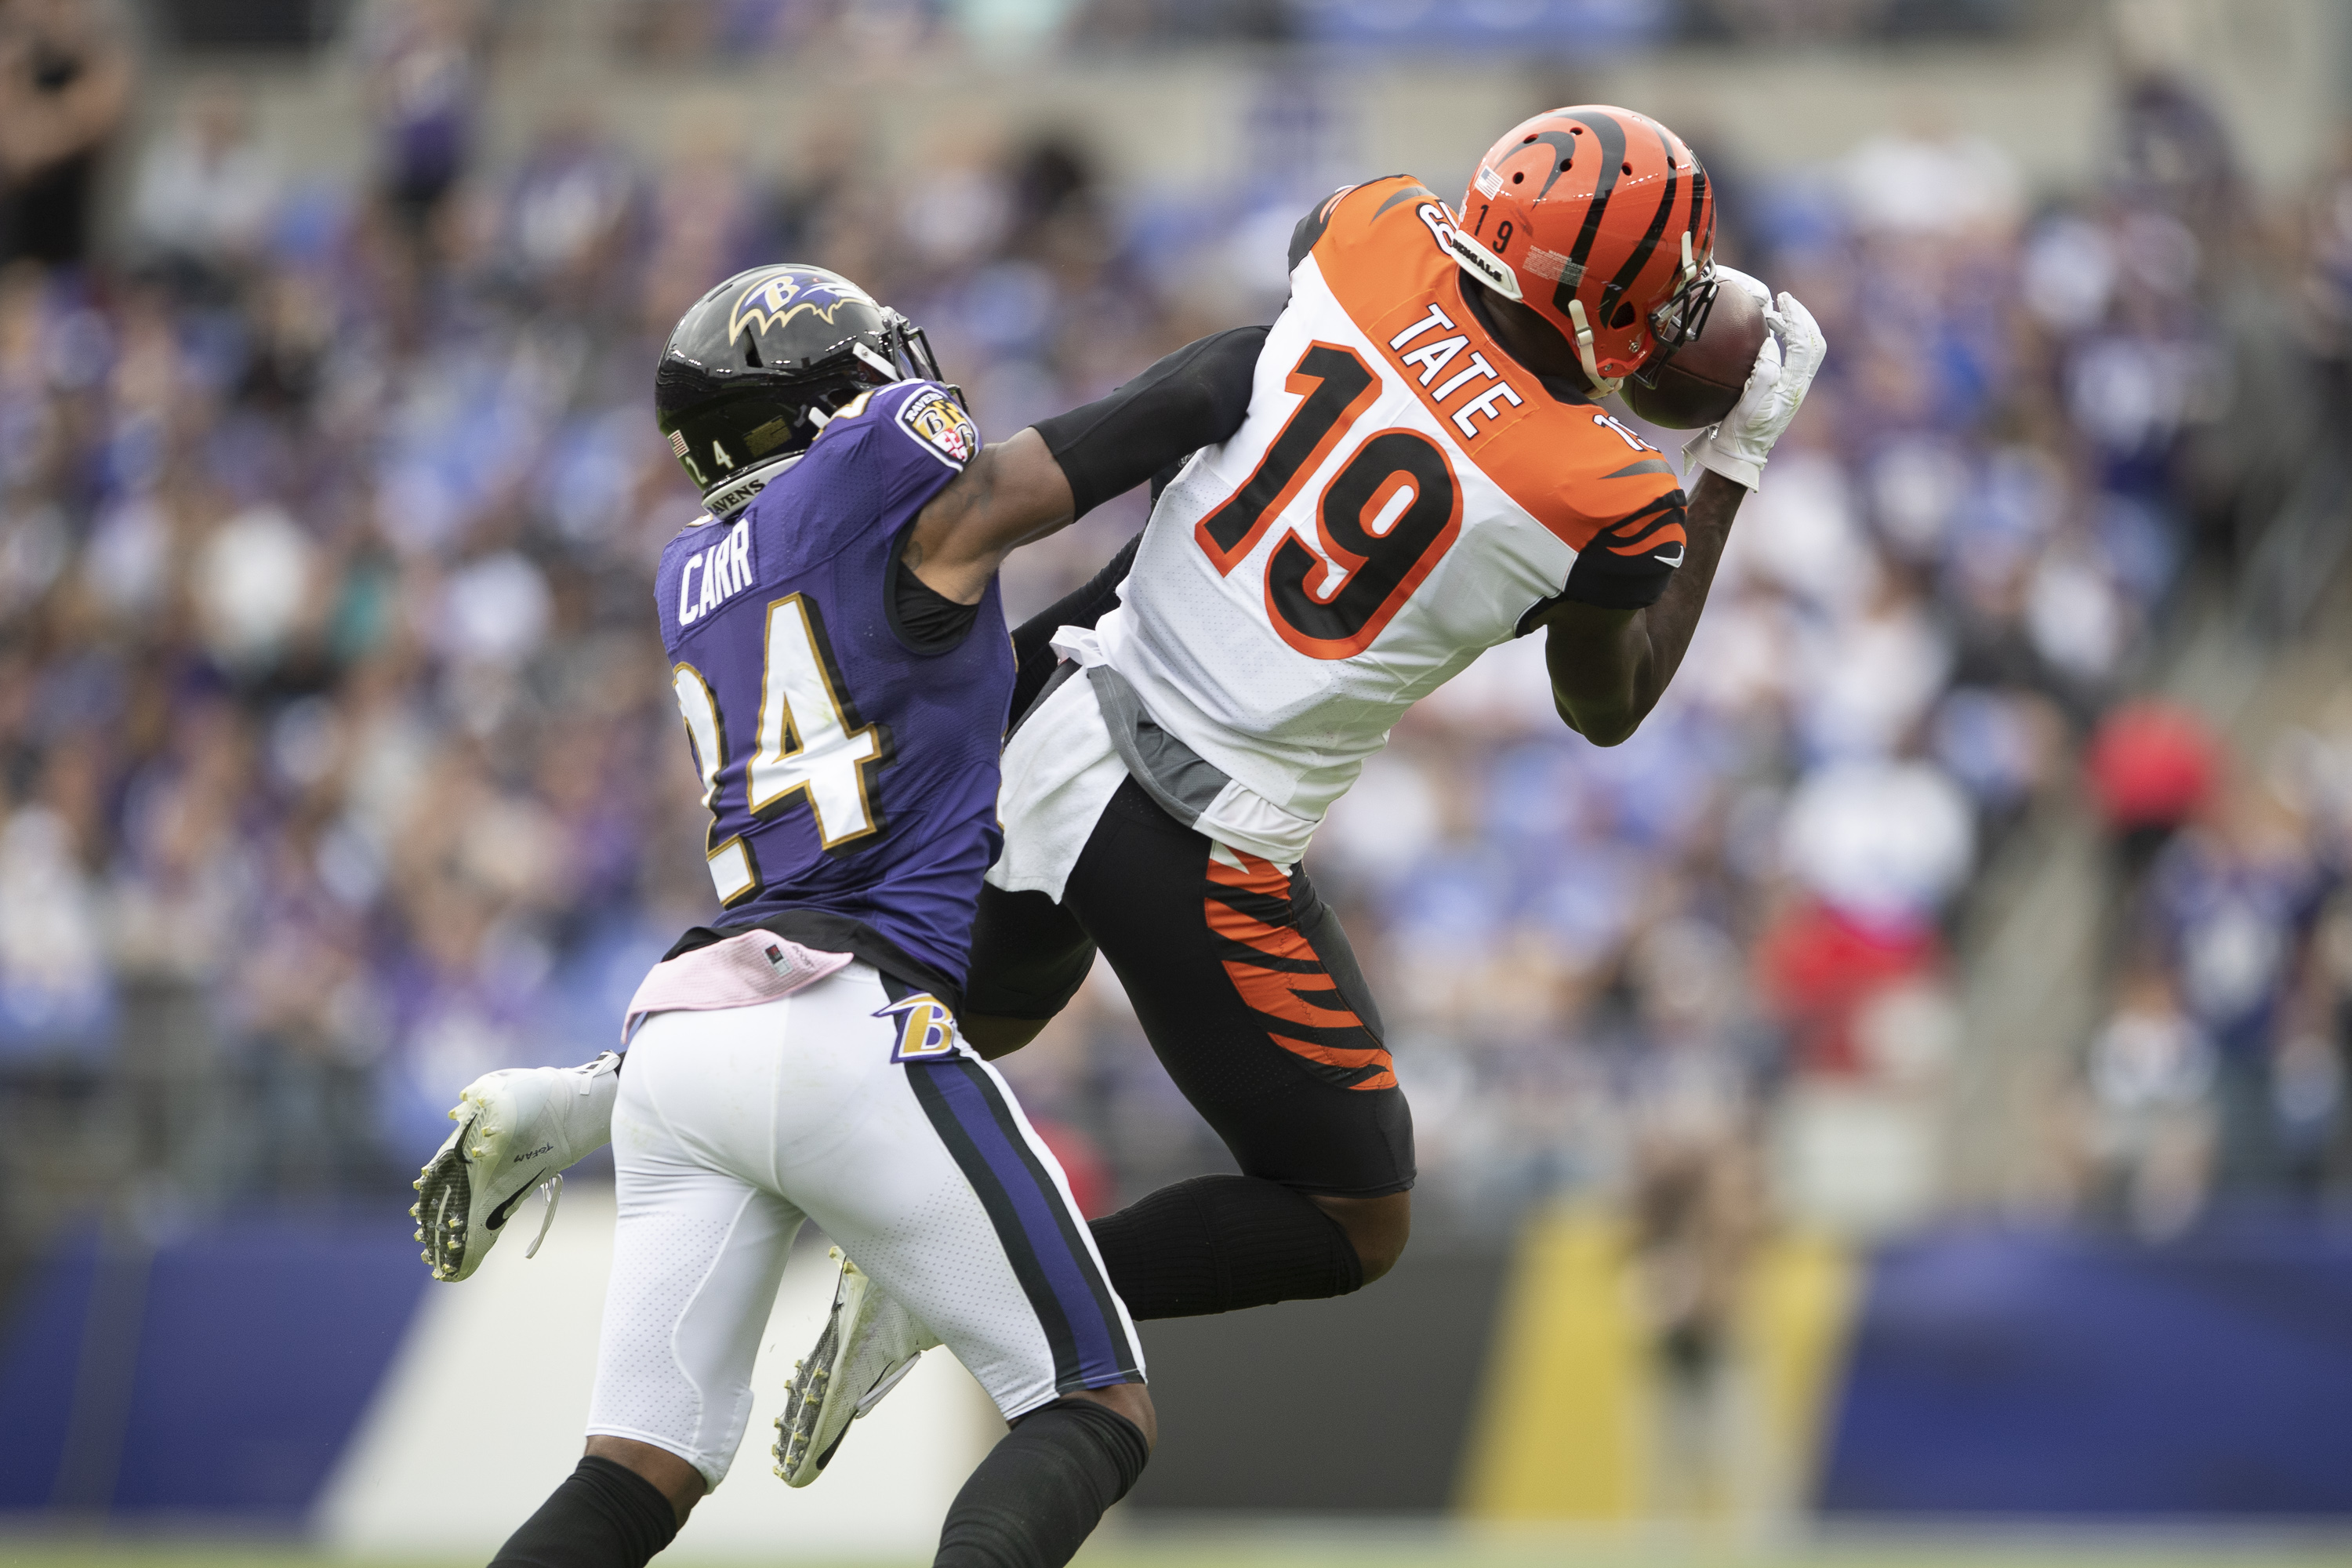 Bengals lose to Ravens, fall to 0-6 on the Season